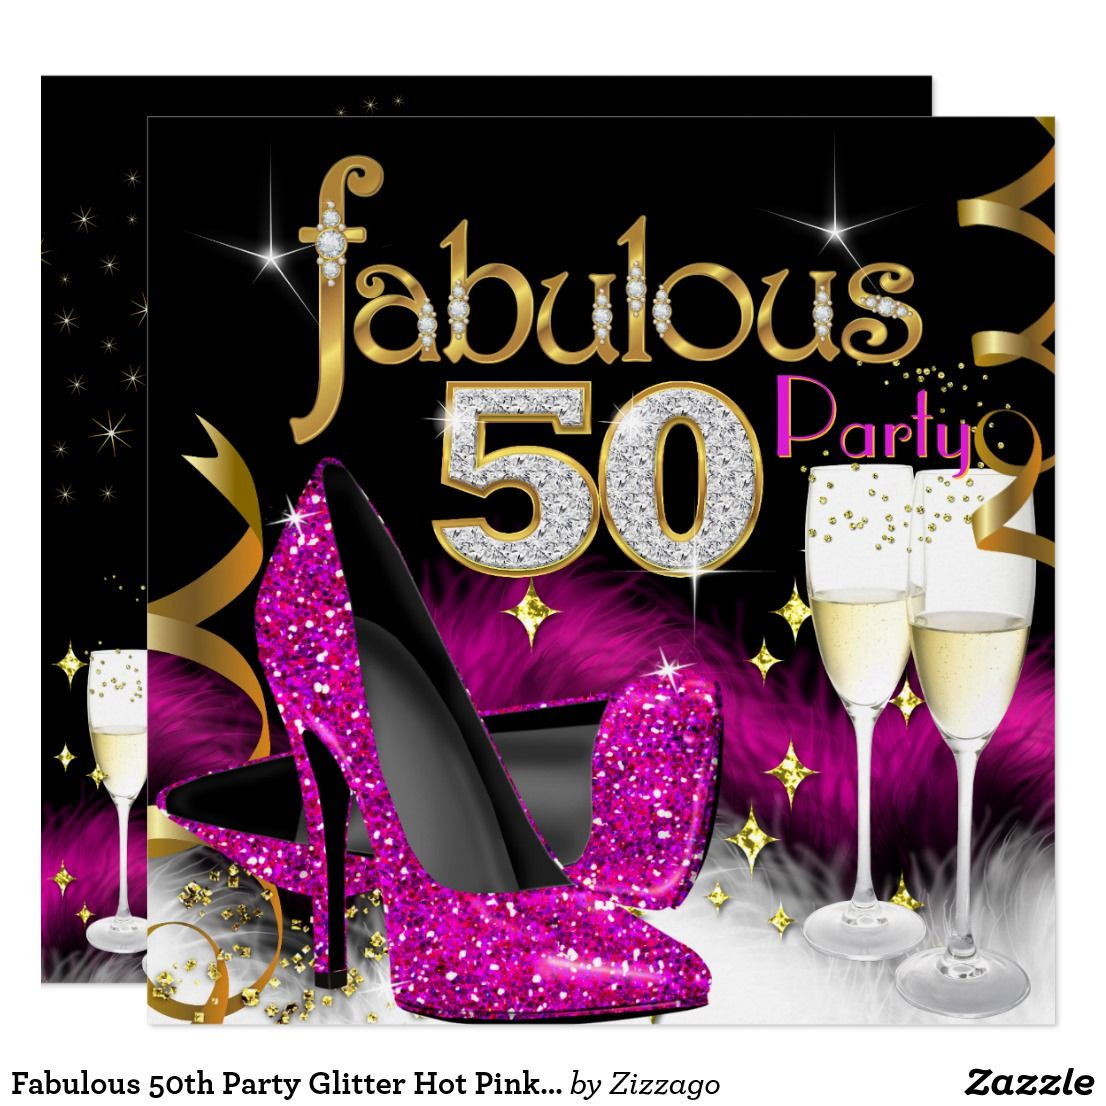 Fabulous 50th Party Glitter Hot Pink Champagne Invitation